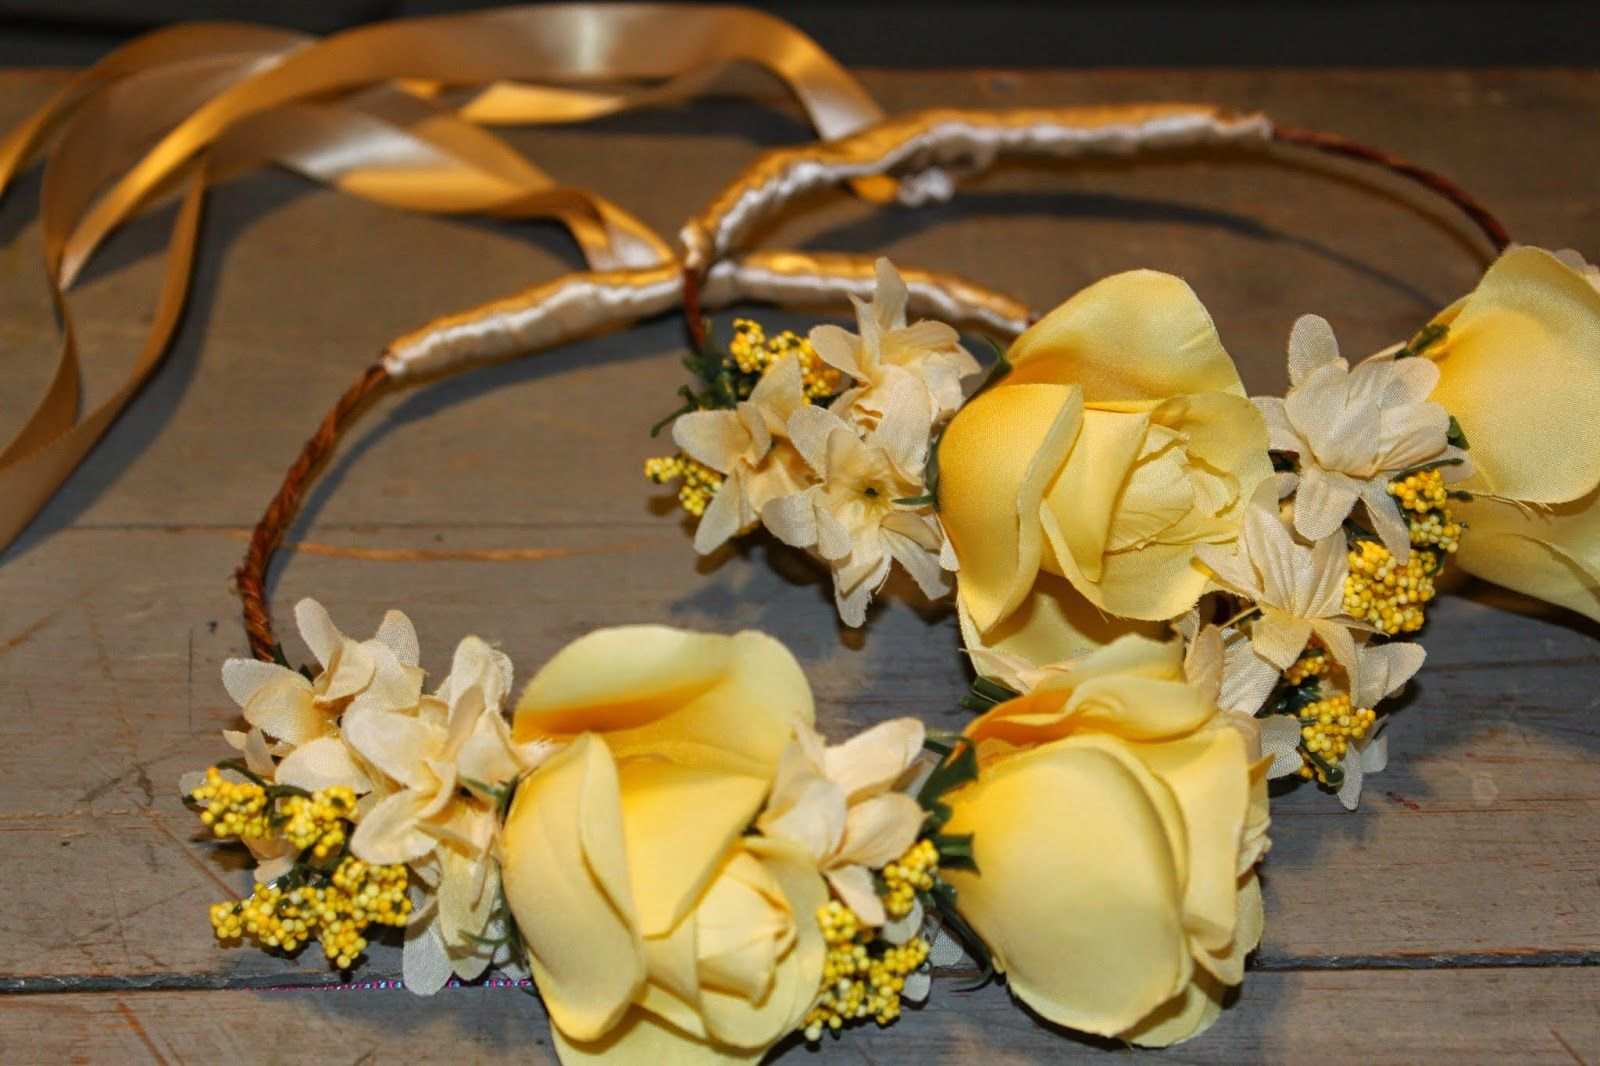 Rawther unusual flower crowns diy flowers pinterest unusual rawther unusual flower crowns diy izmirmasajfo Images